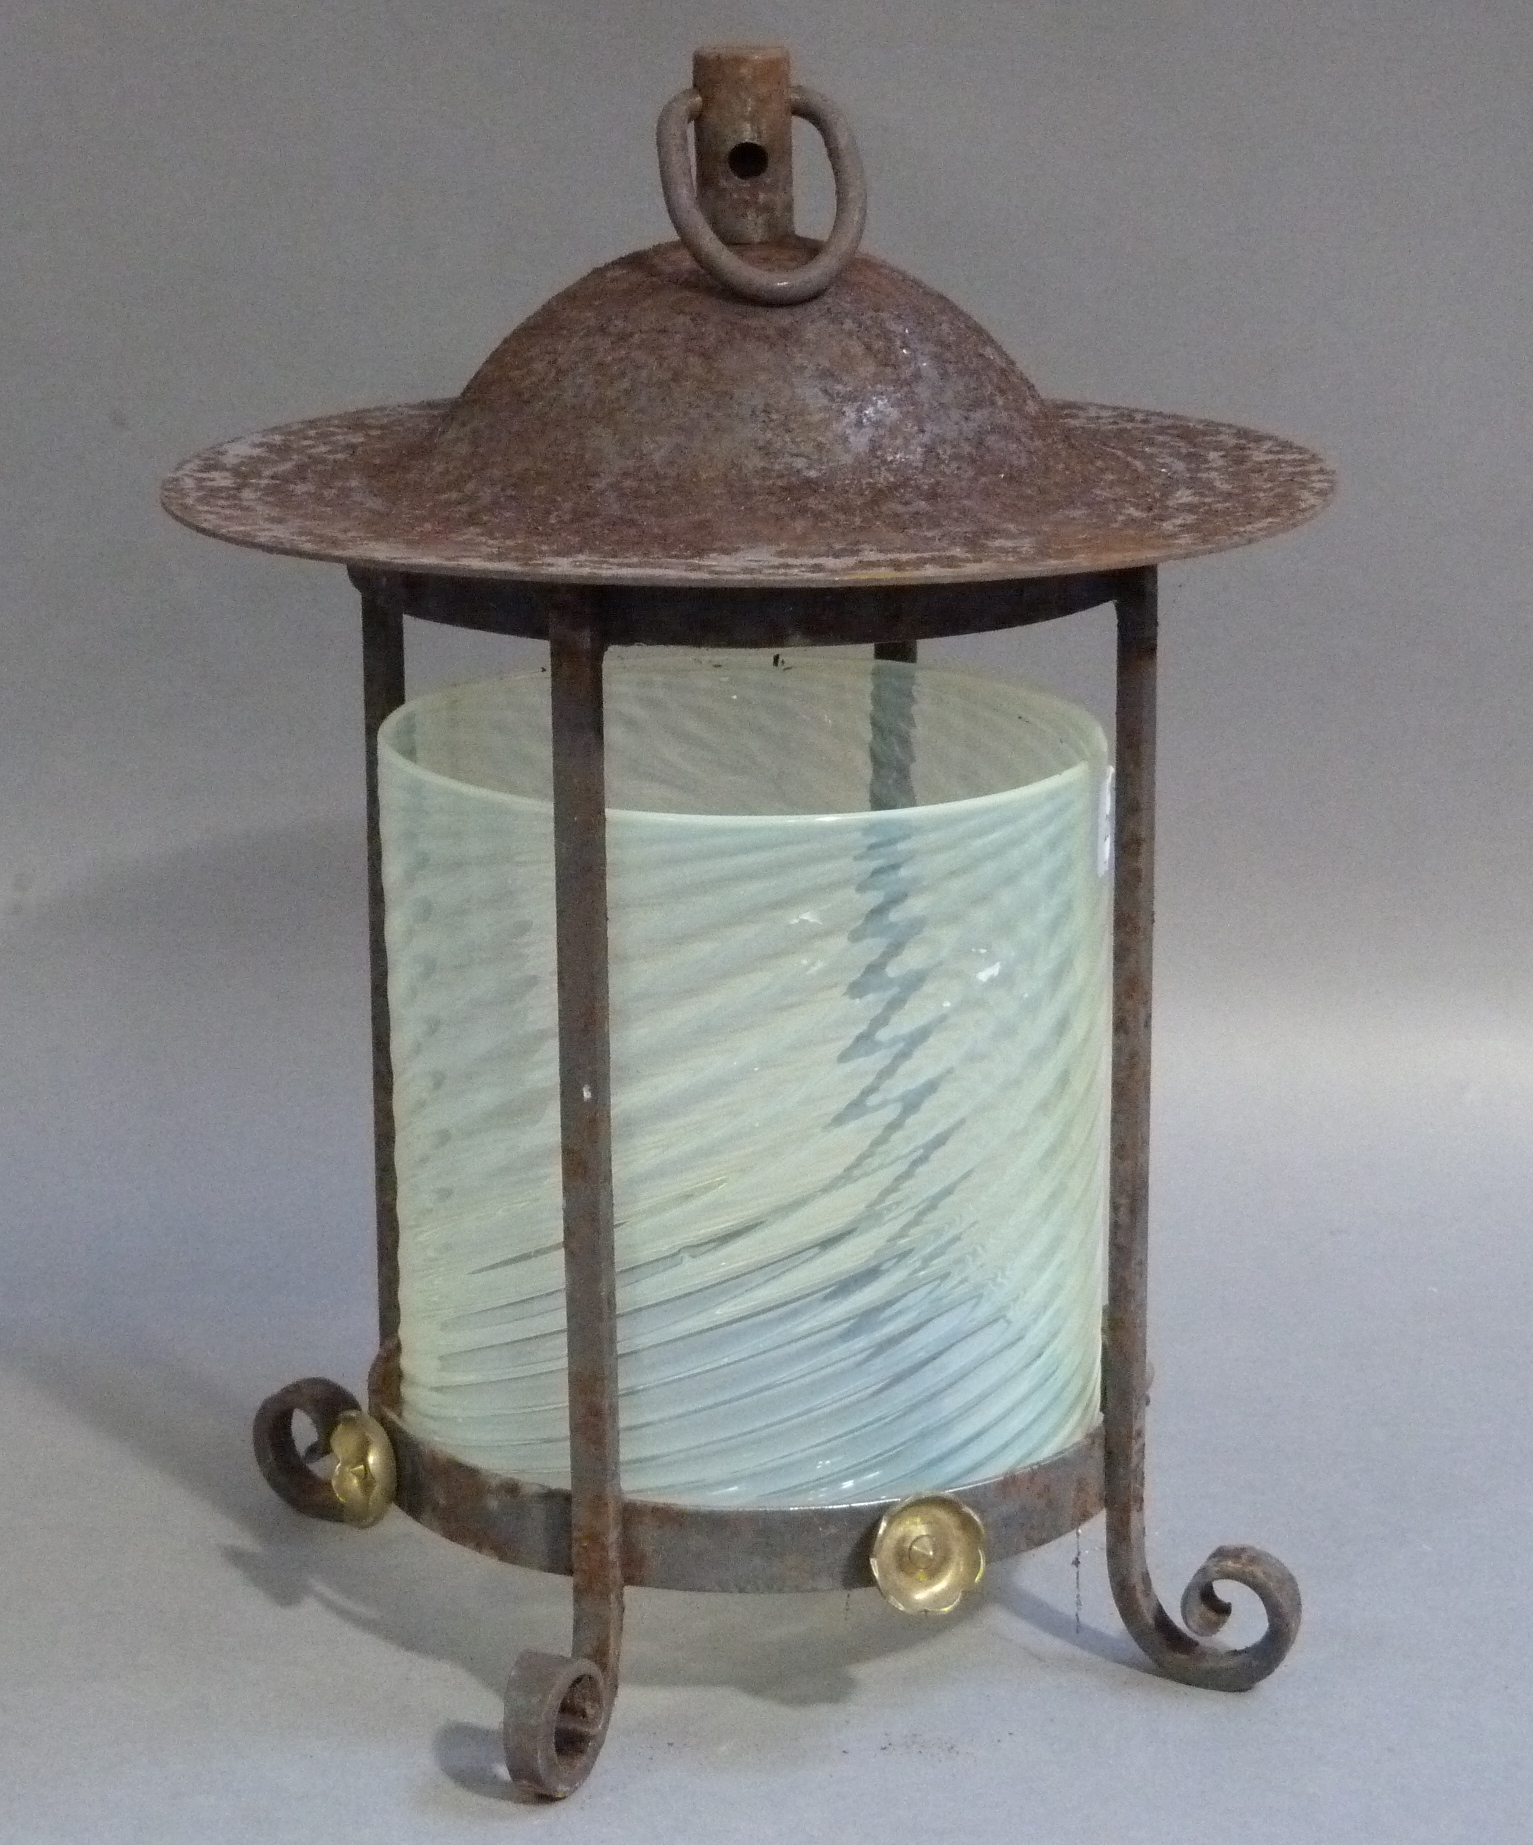 Lot 51 - An iron framed hall lantern with suspension ring post and domed top, the quadruple posted frame with